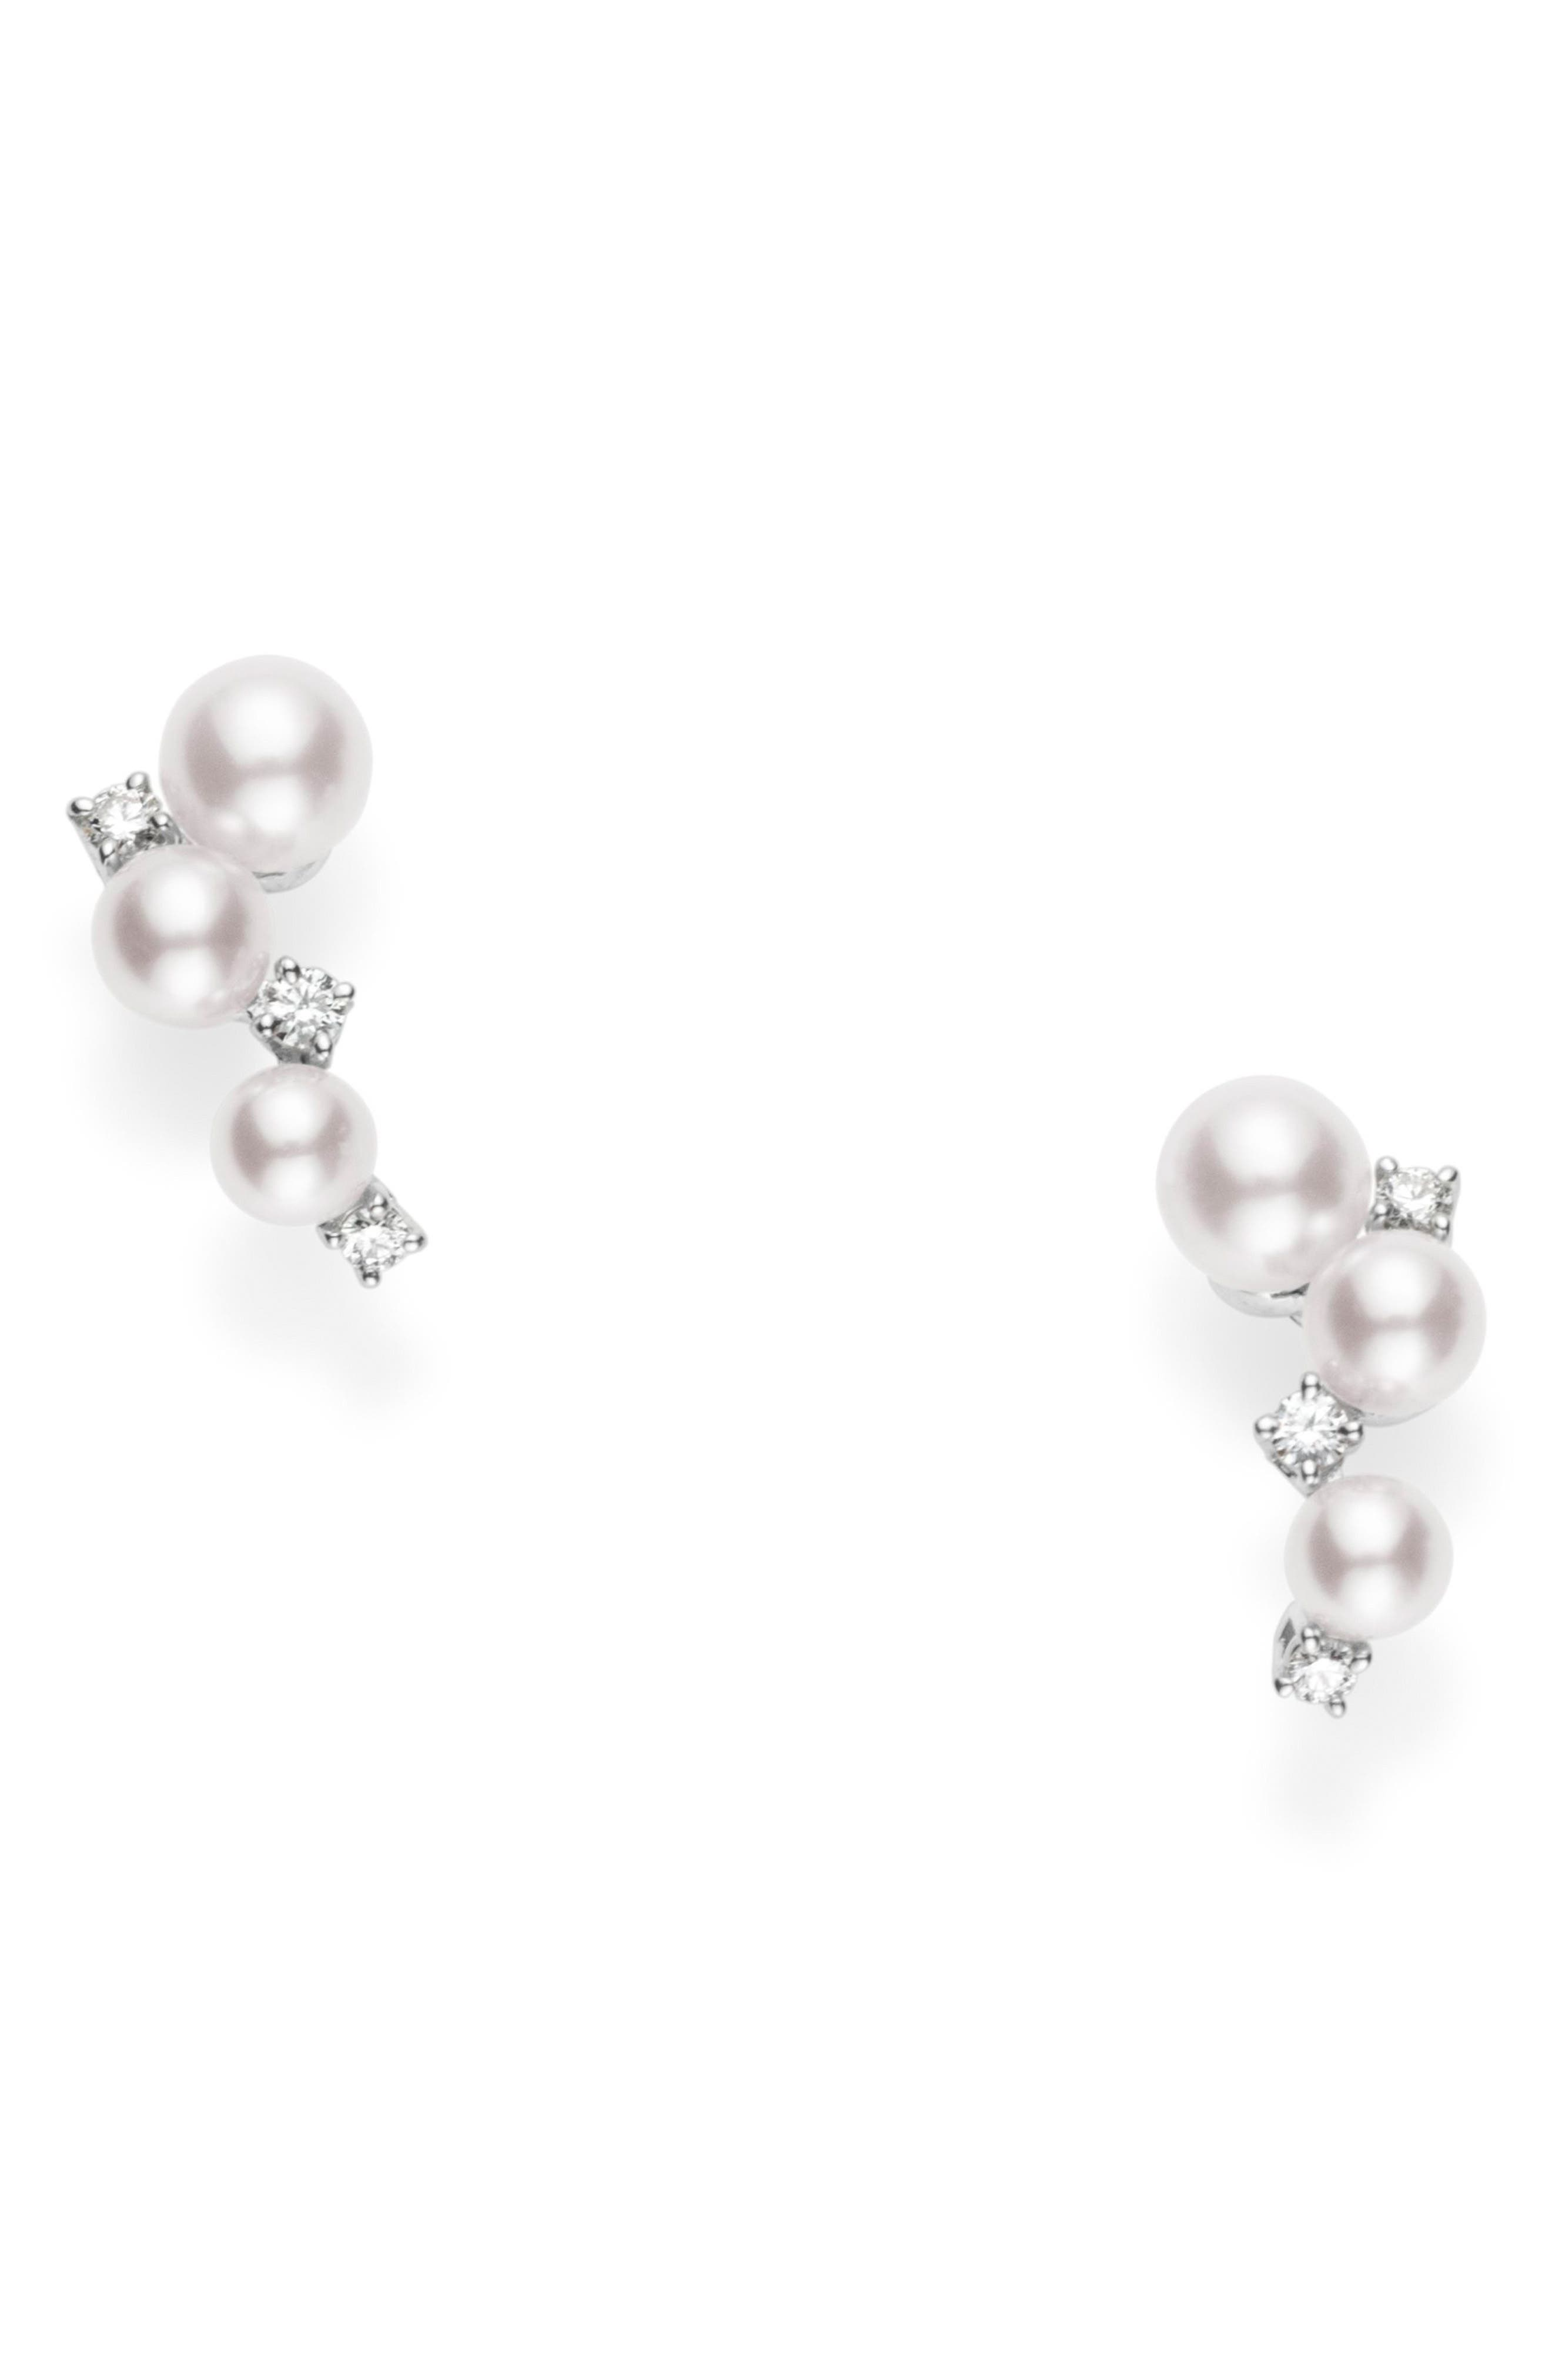 Pearl & Diamond Cluster Earrings,                             Main thumbnail 1, color,                             WHITE GOLD